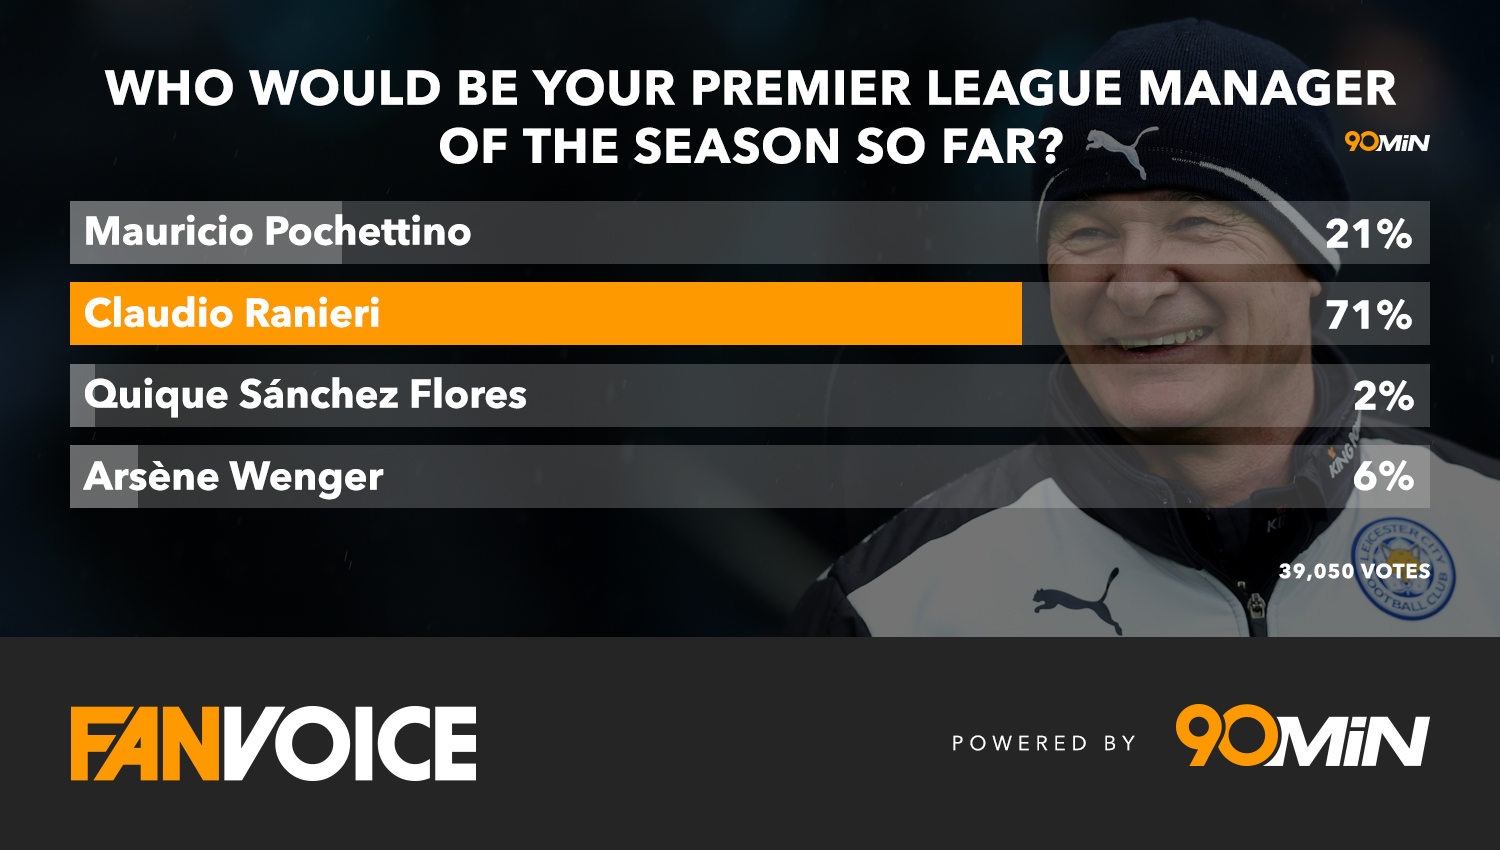 Who-Would-Be-Your-Premier-League-Manager-of-the-Season-So-Far-